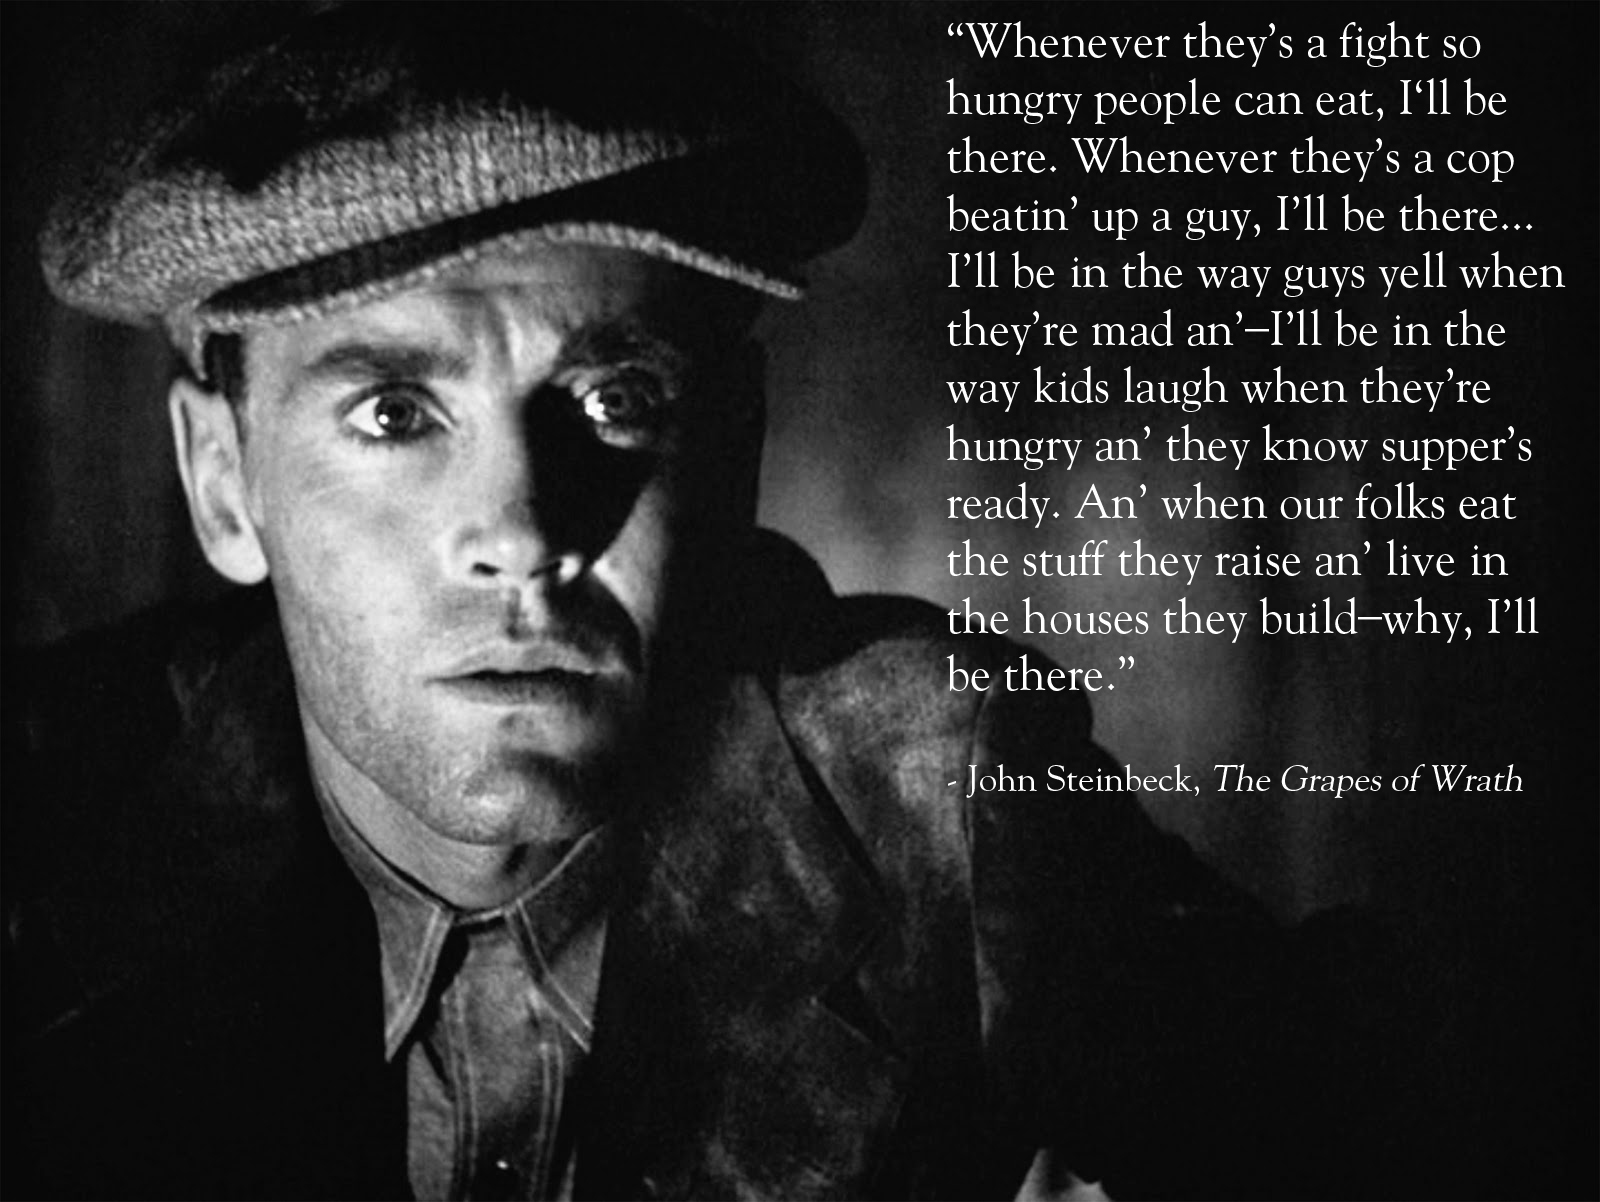 grapes of wrath The grapes of wrath (1940) is director john ford's most famous black and white epic drama - the classic adaptation of john steinbeck's.